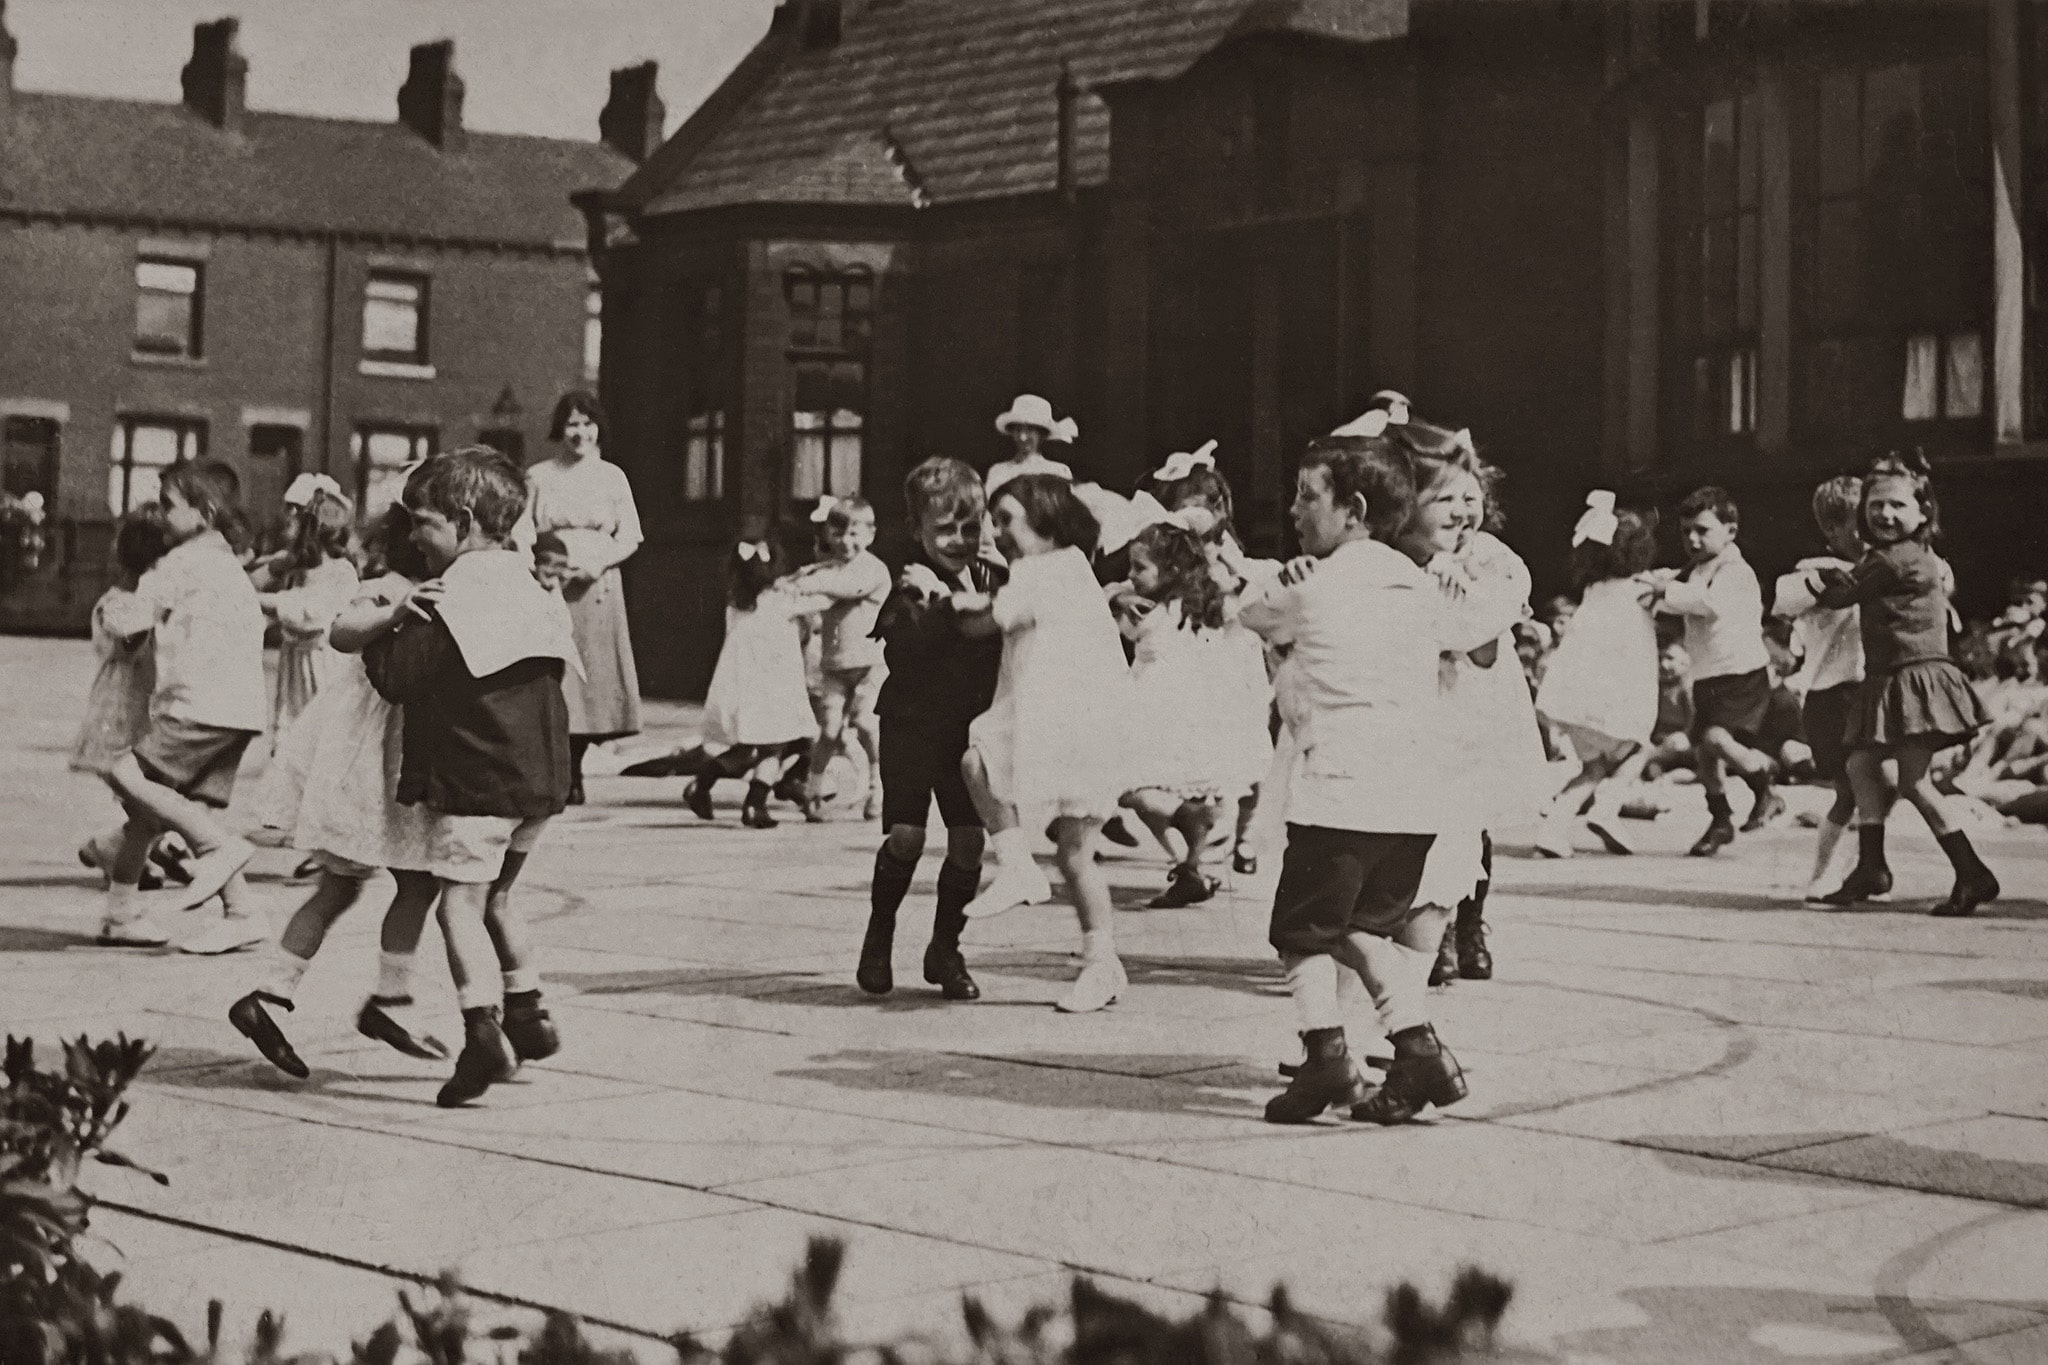 Children learn how to perform gender identities in an old sepia photograph where boys and girls and paired off with each other on the playground